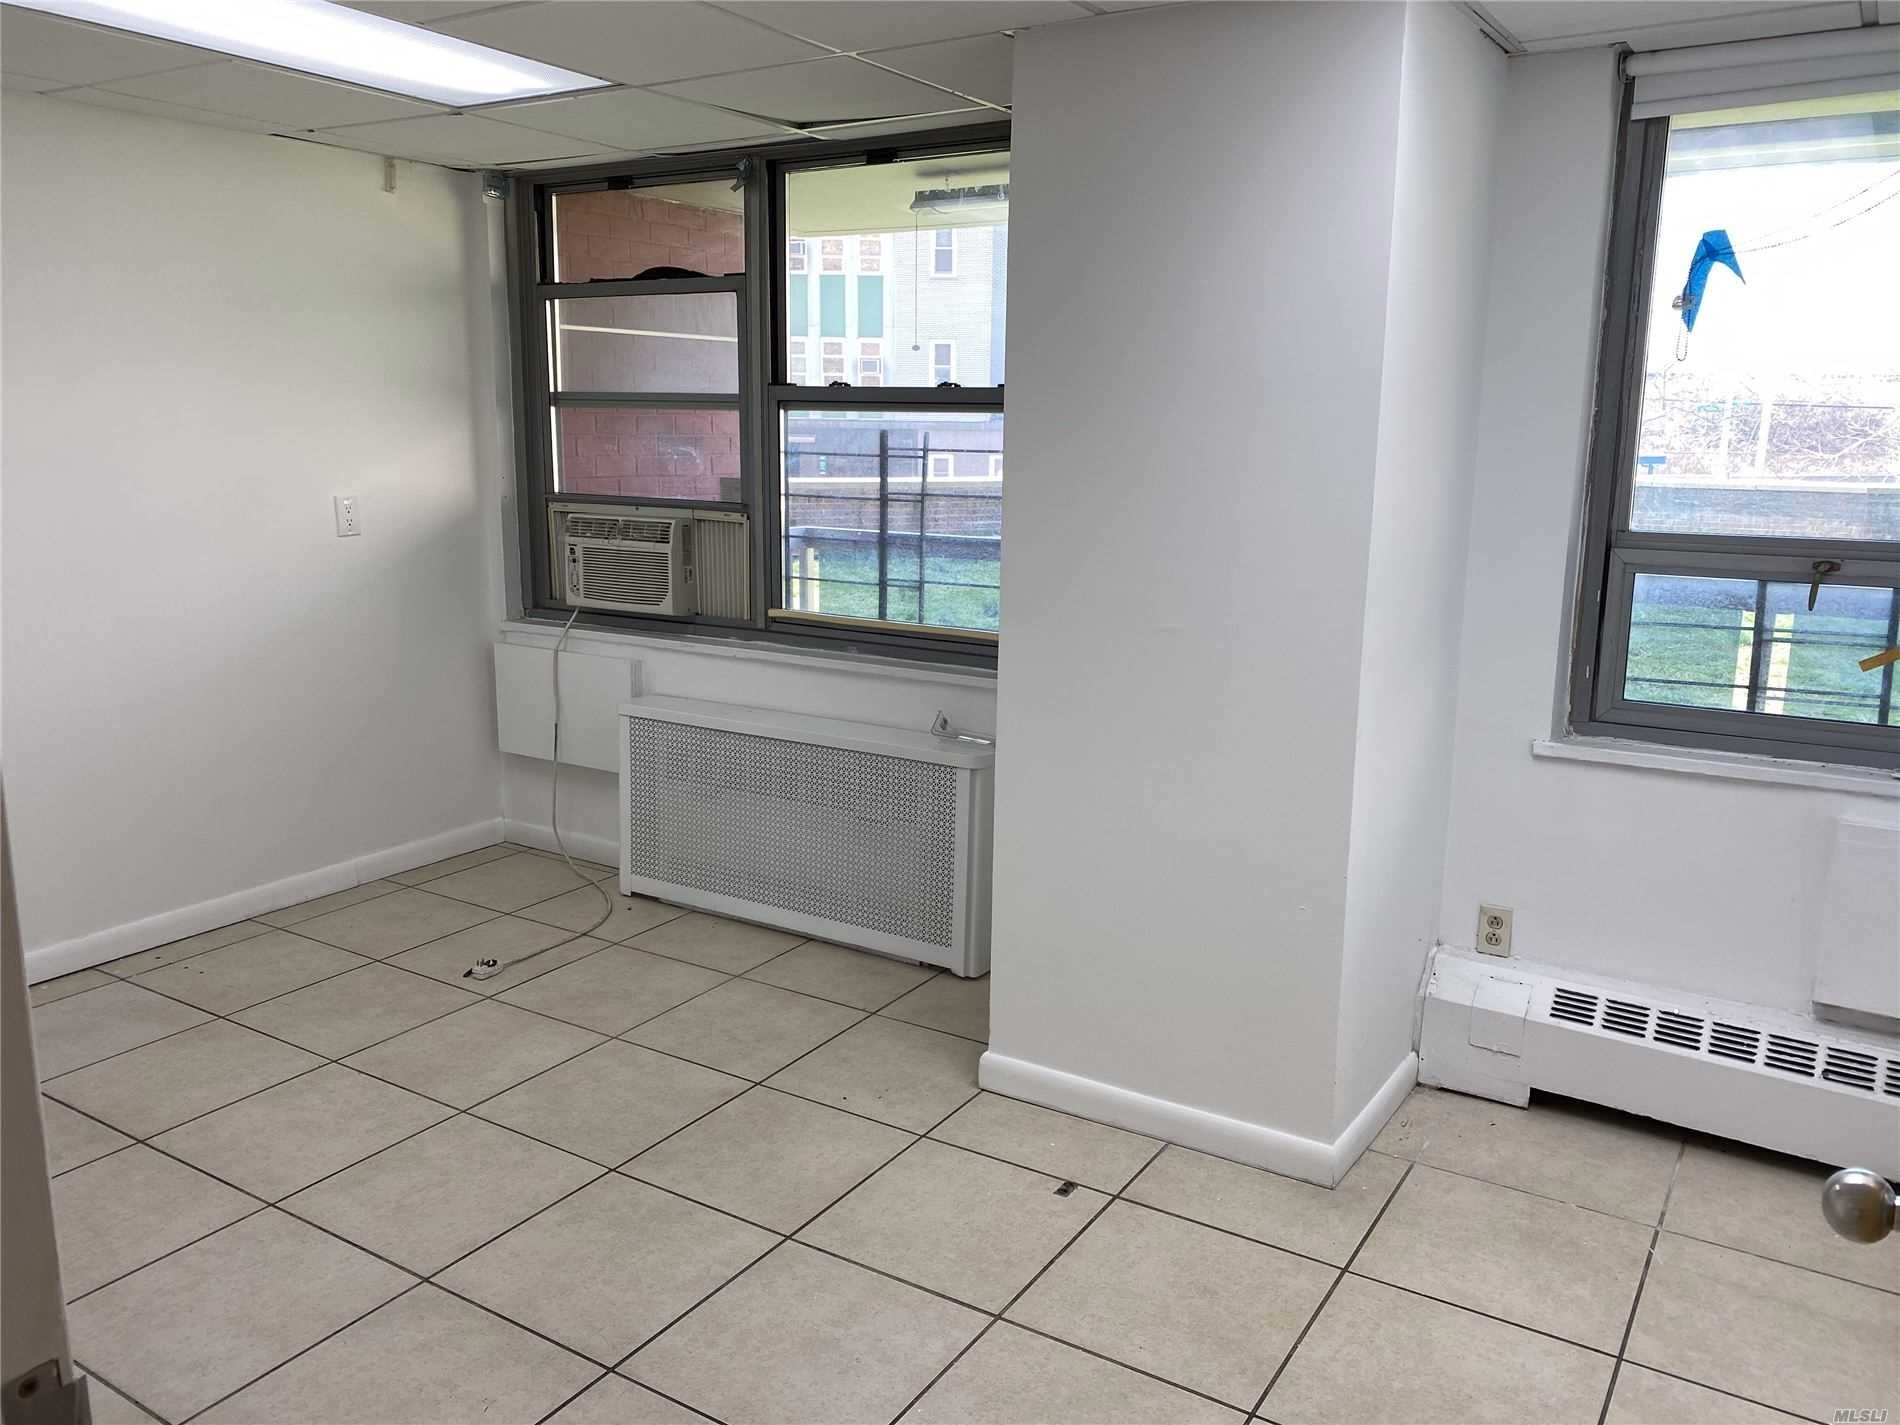 9. Commercial / Office at 104-40 Queens Boulevard, 1C/D Rego Park, Queens, NY 11375